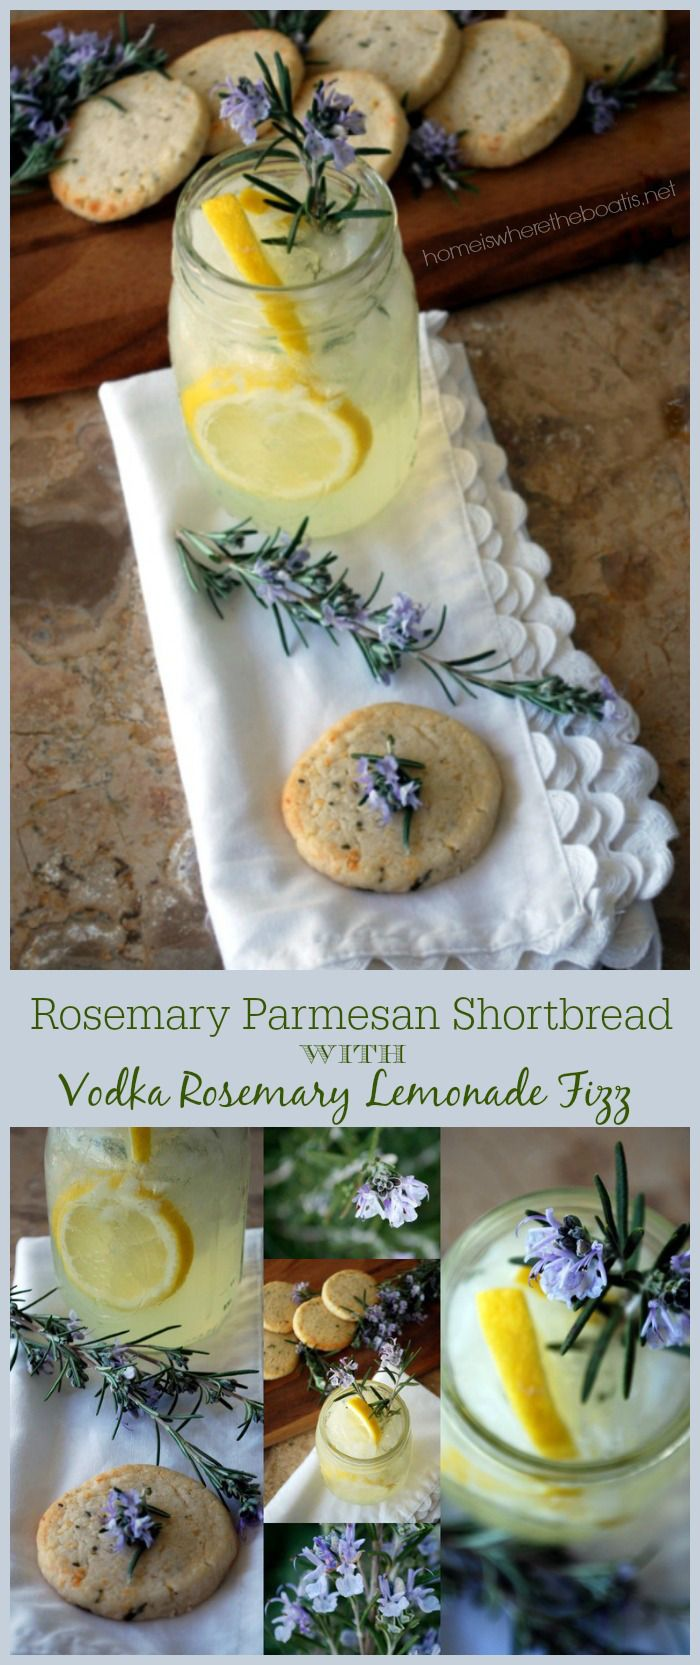 Rosemary Recipes, 5 Ingredient Rosemary Parmesan Shortbread and a refreshing cocktail, Vodka Rosemary Lemonade Fizz!   homeiswheretheboatis.net #cocktail